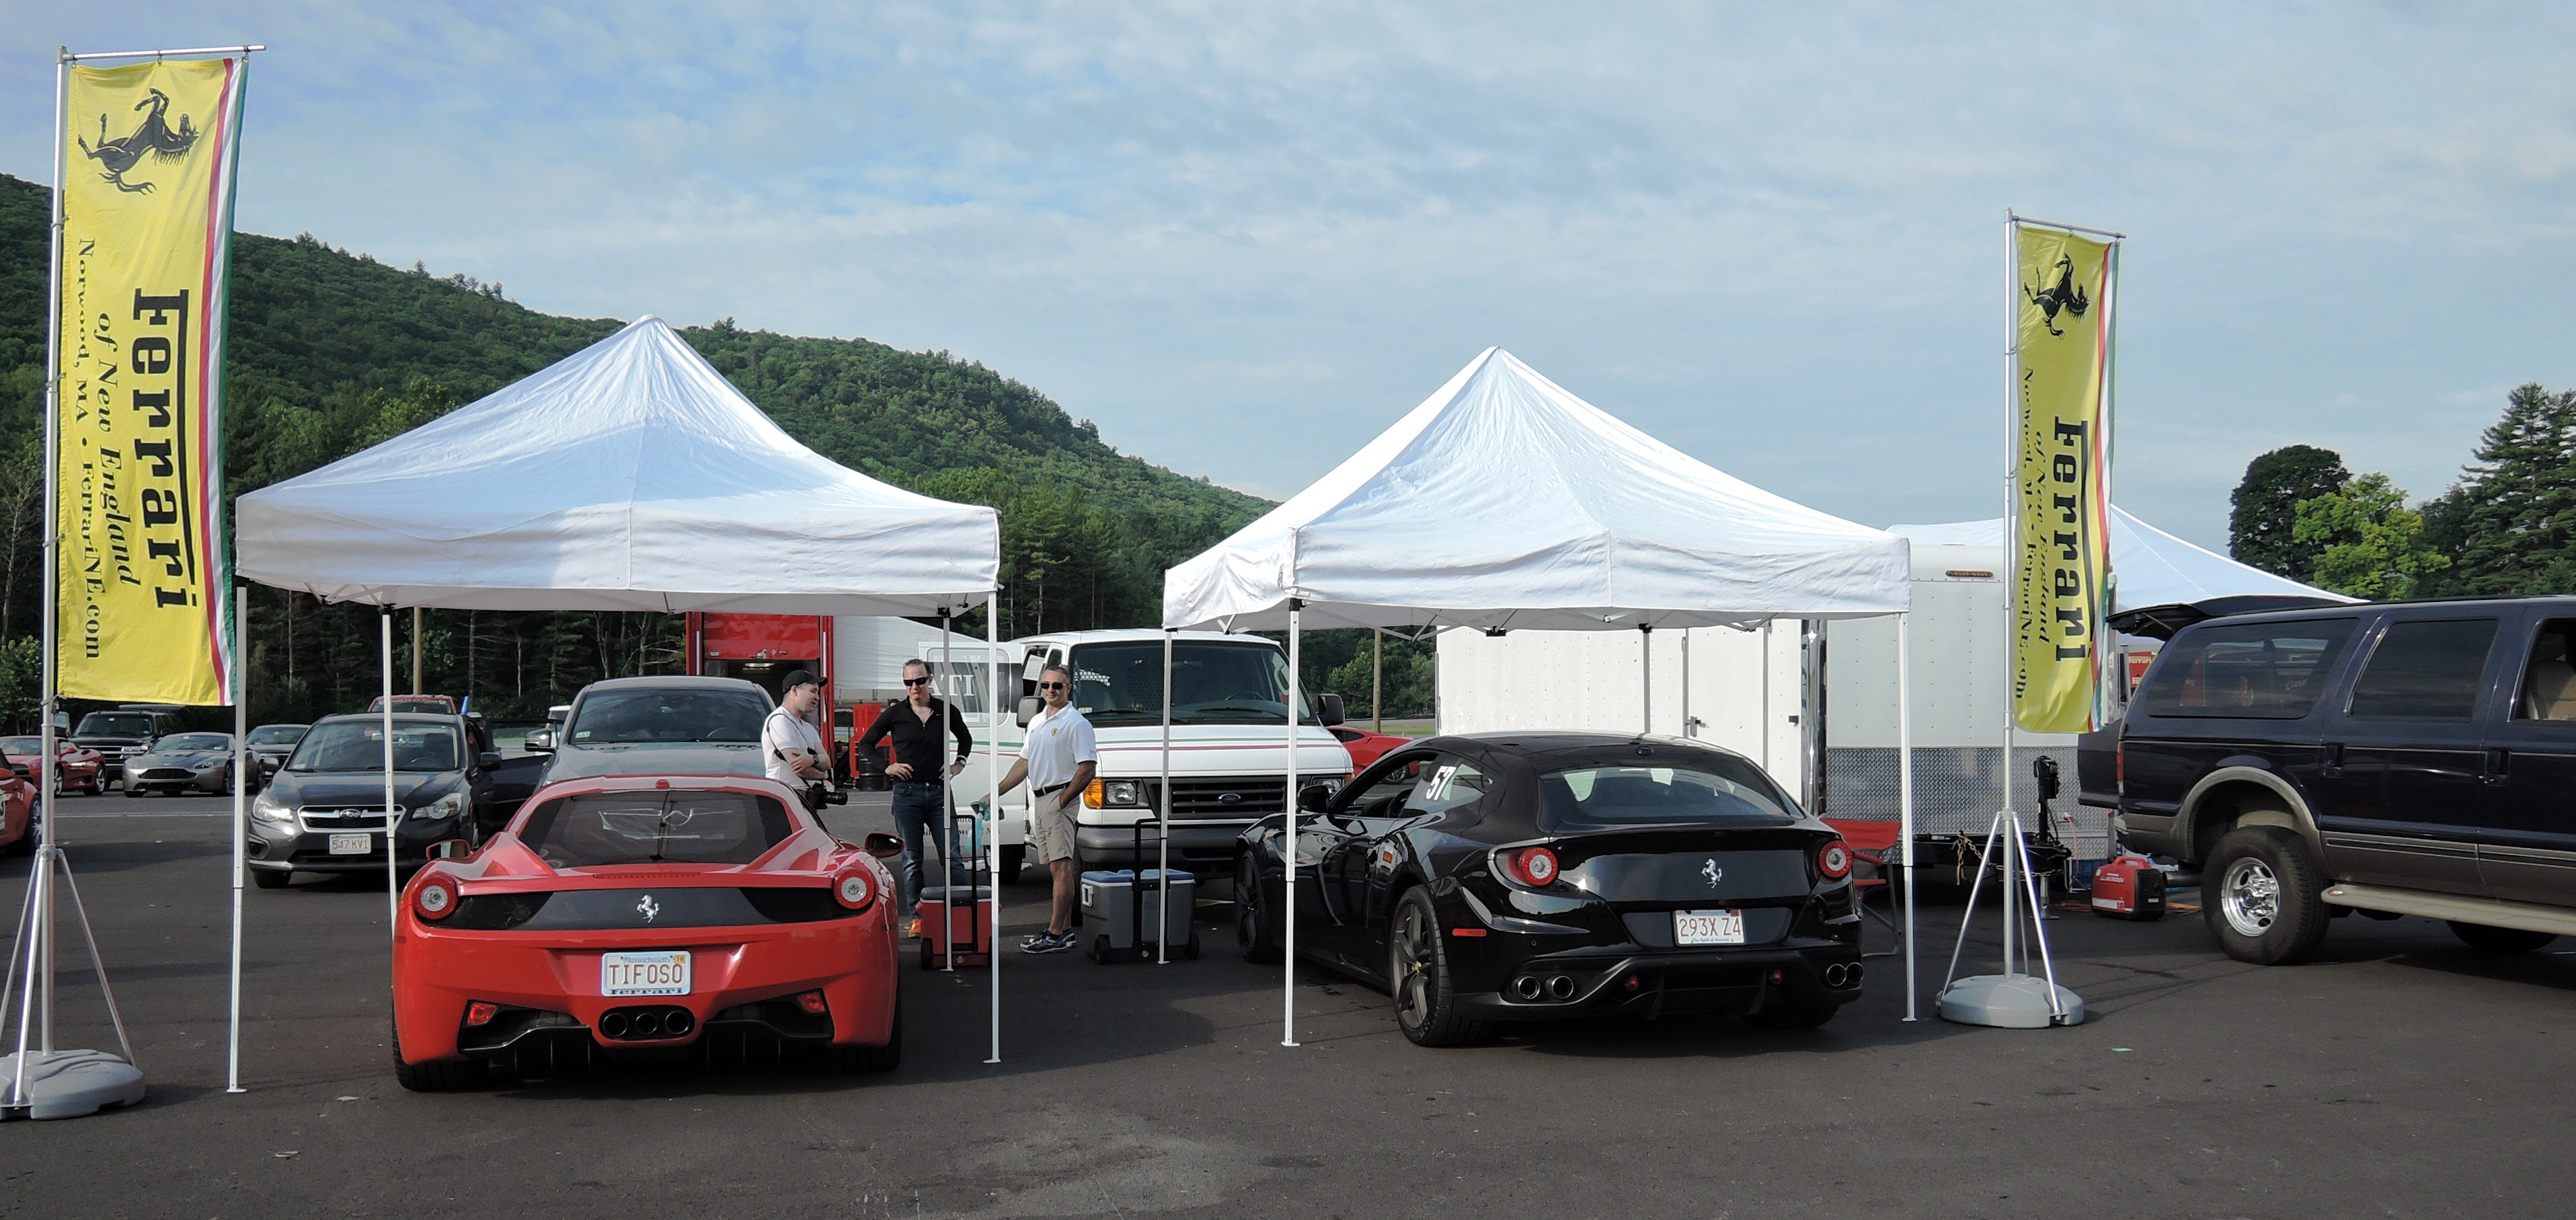 Ferrari of New England - ferraris at Lime rock park